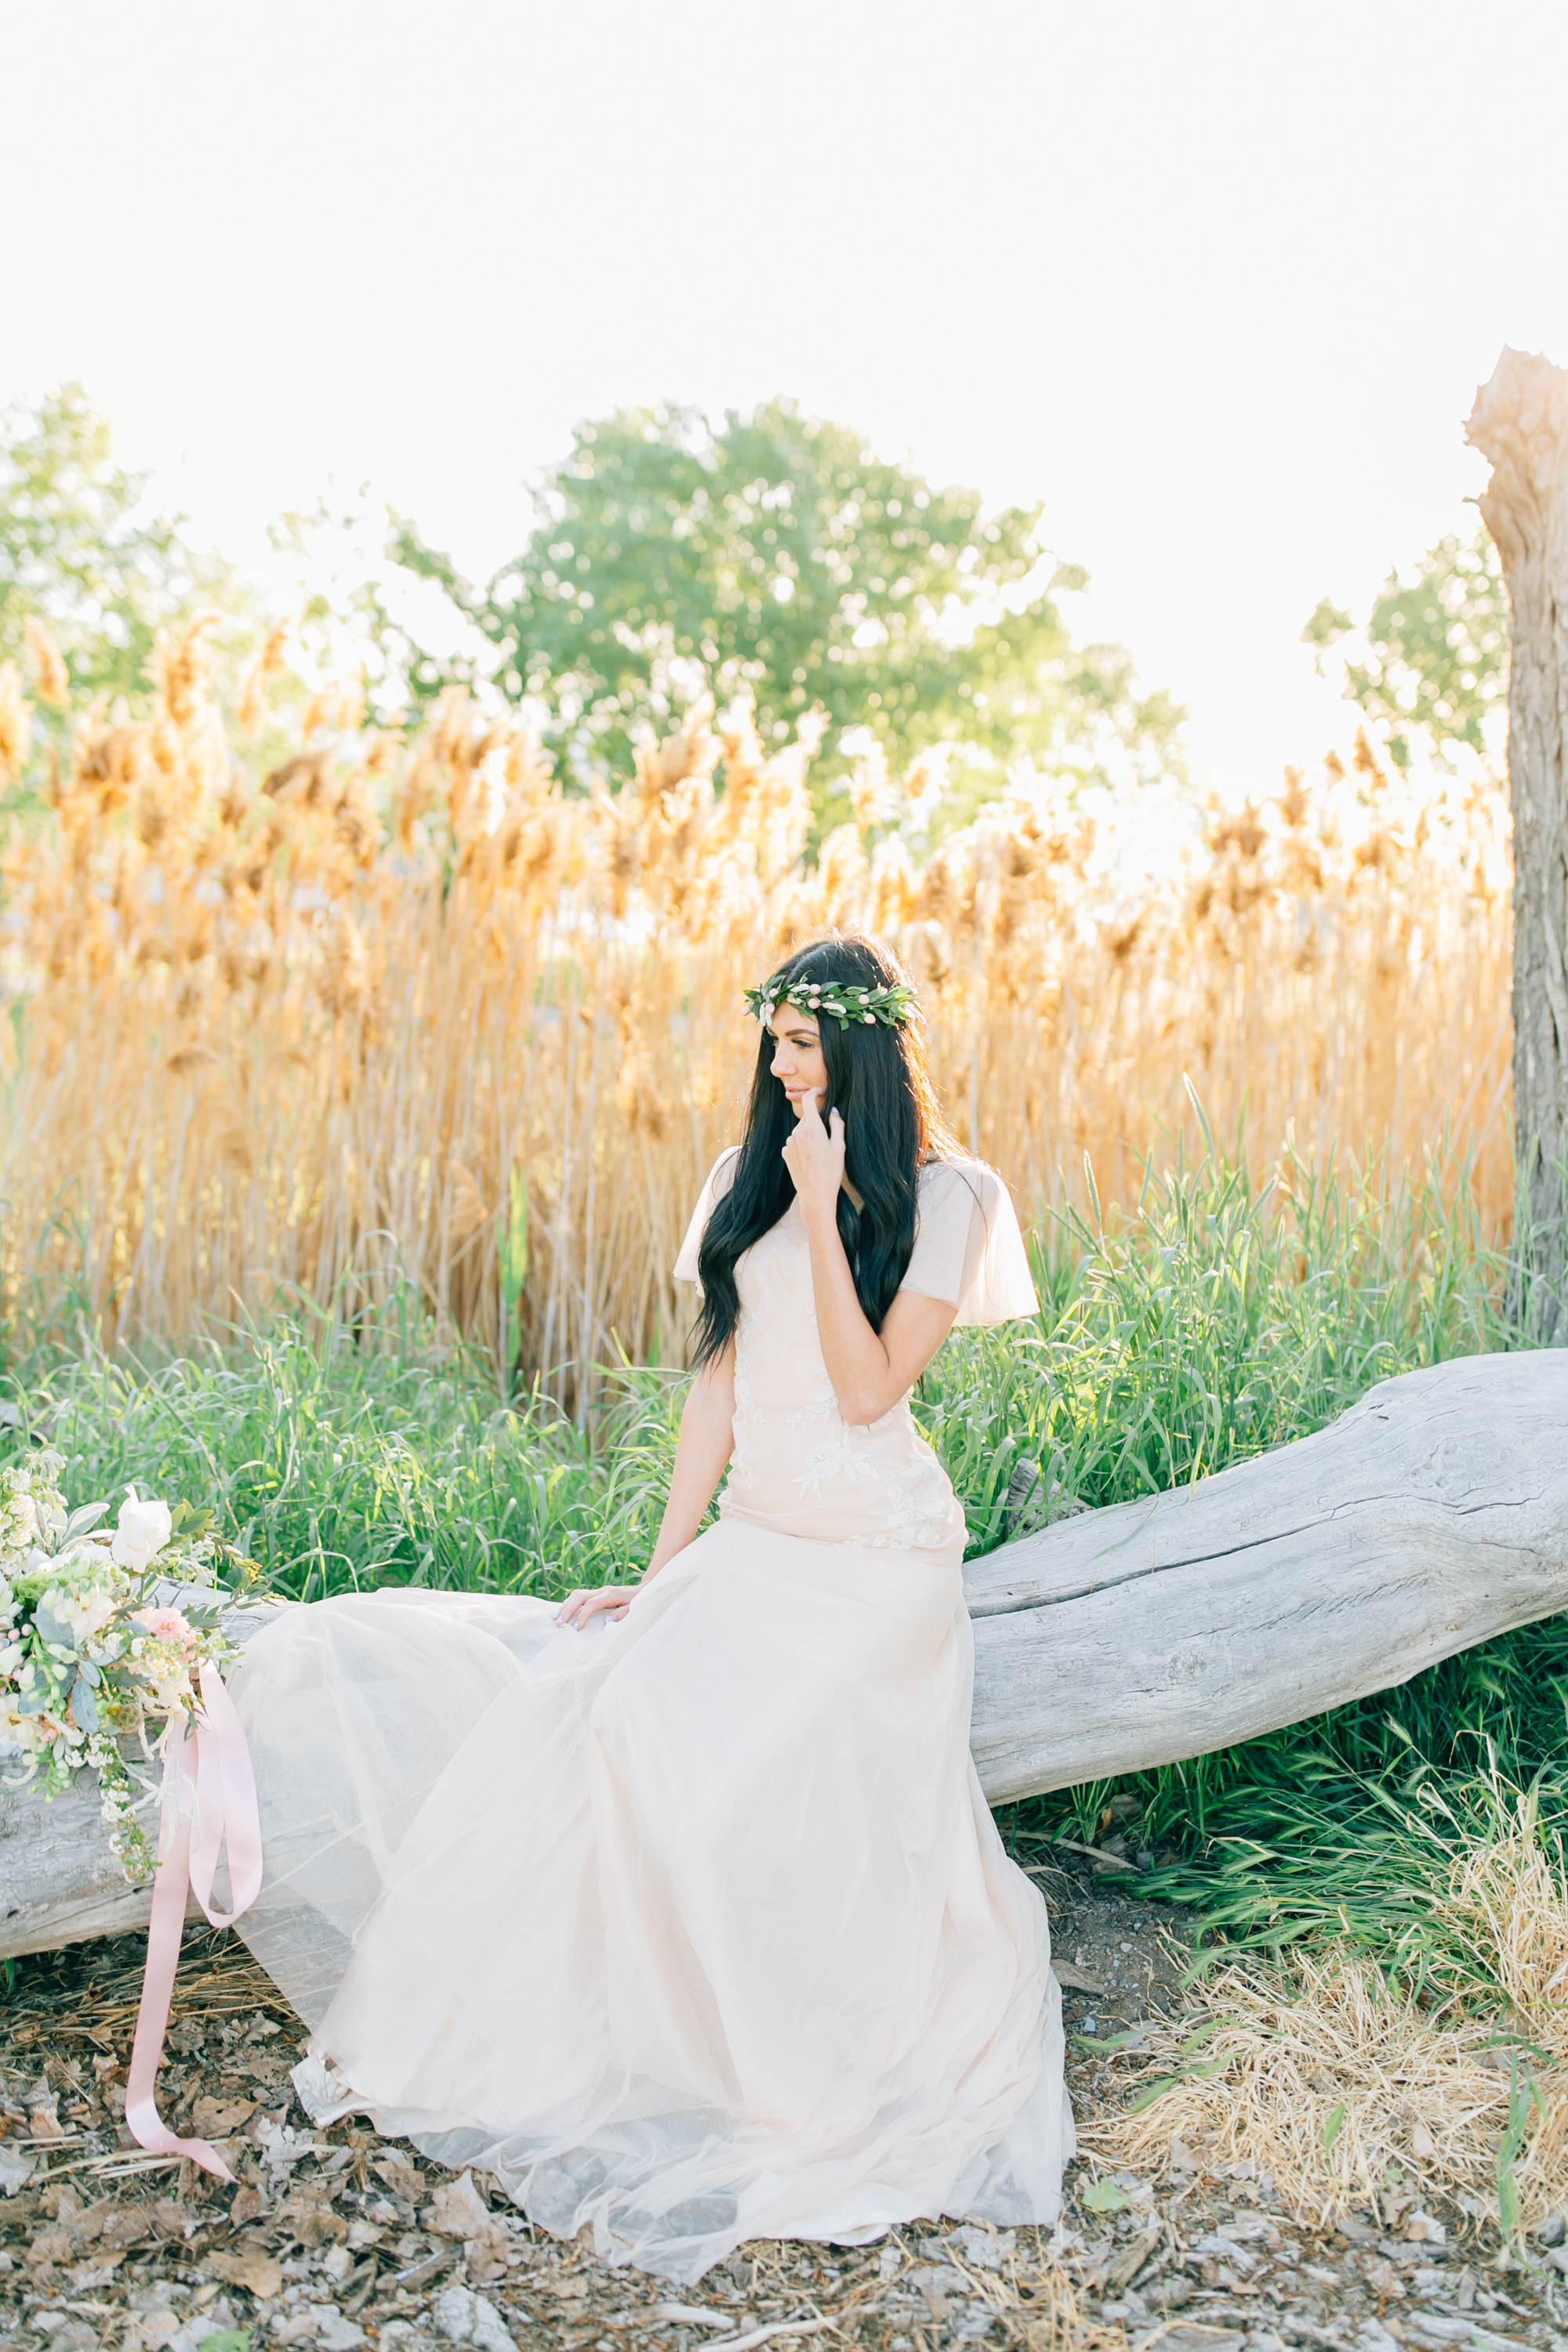 Best 20 Places to Buy a Wedding Dress in Utah   Truly Photography